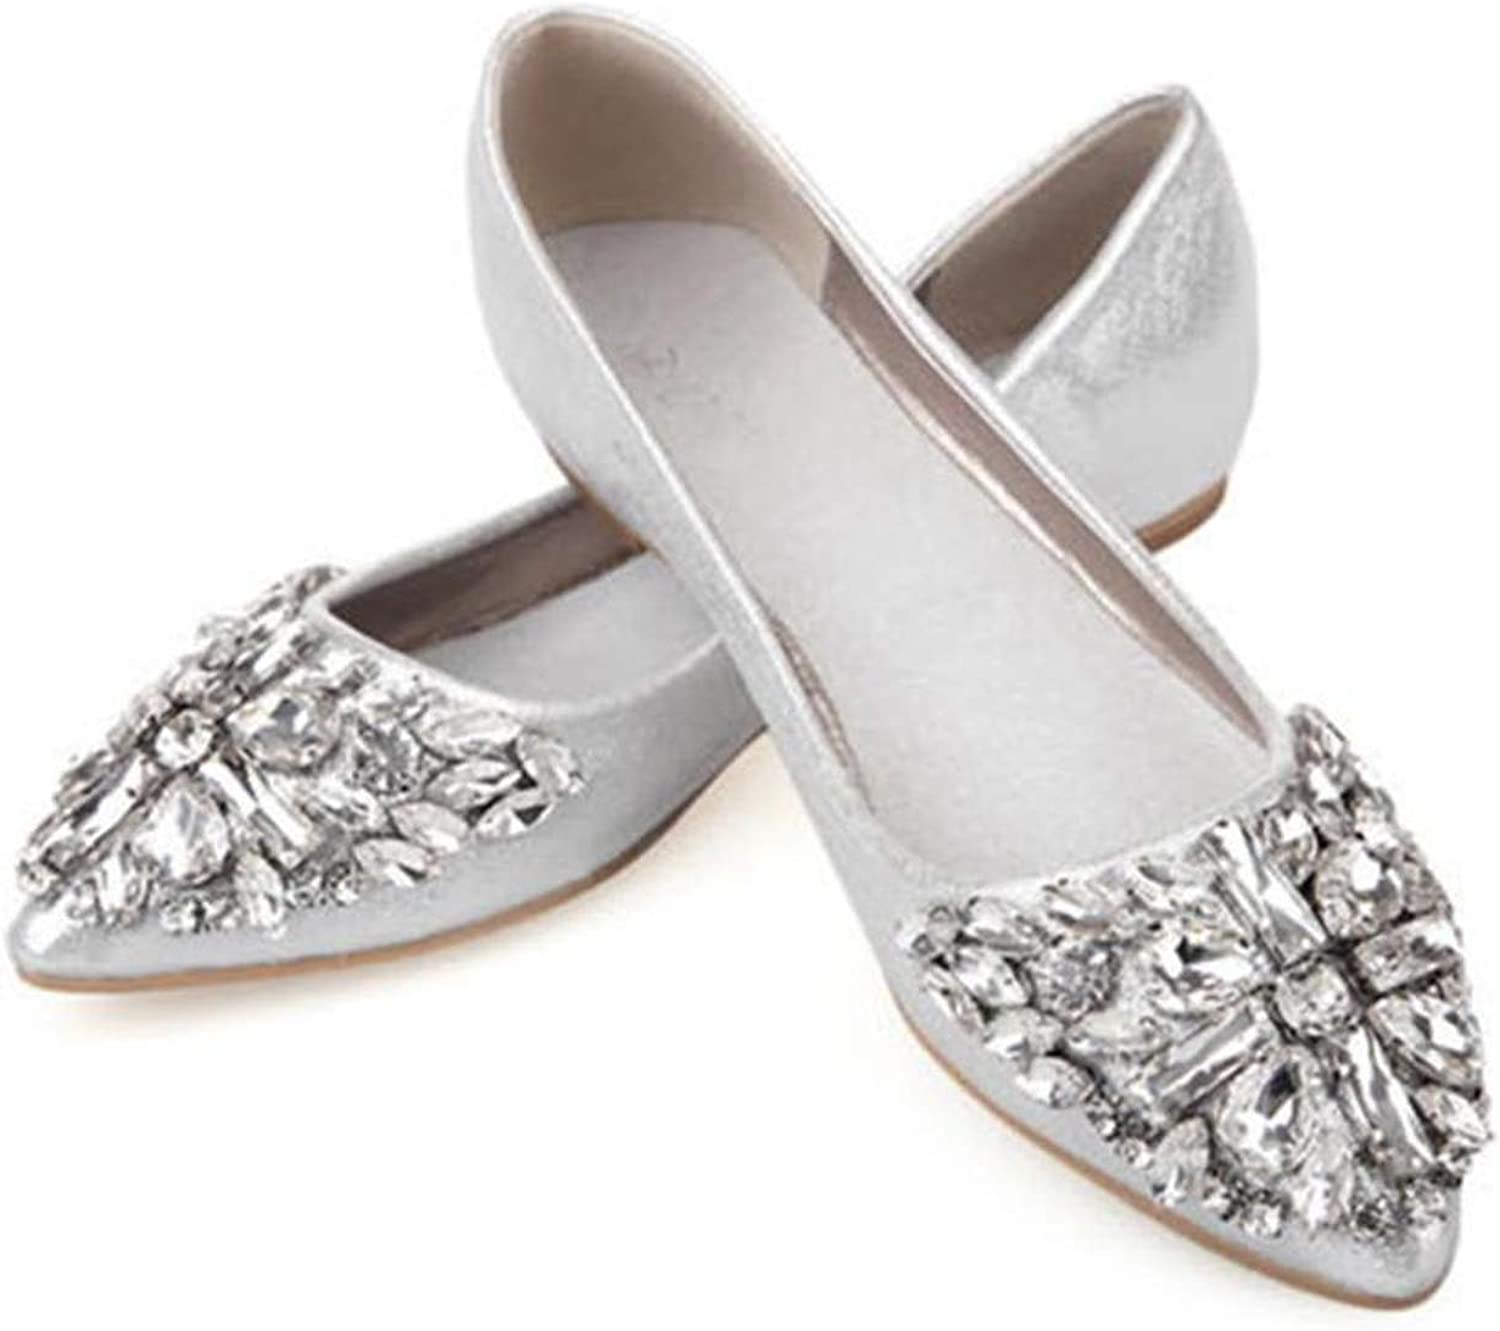 Fashion Women Ballet shoes Leisure Spring Pointy Ballerina Bling Rhinestone Flats shoes